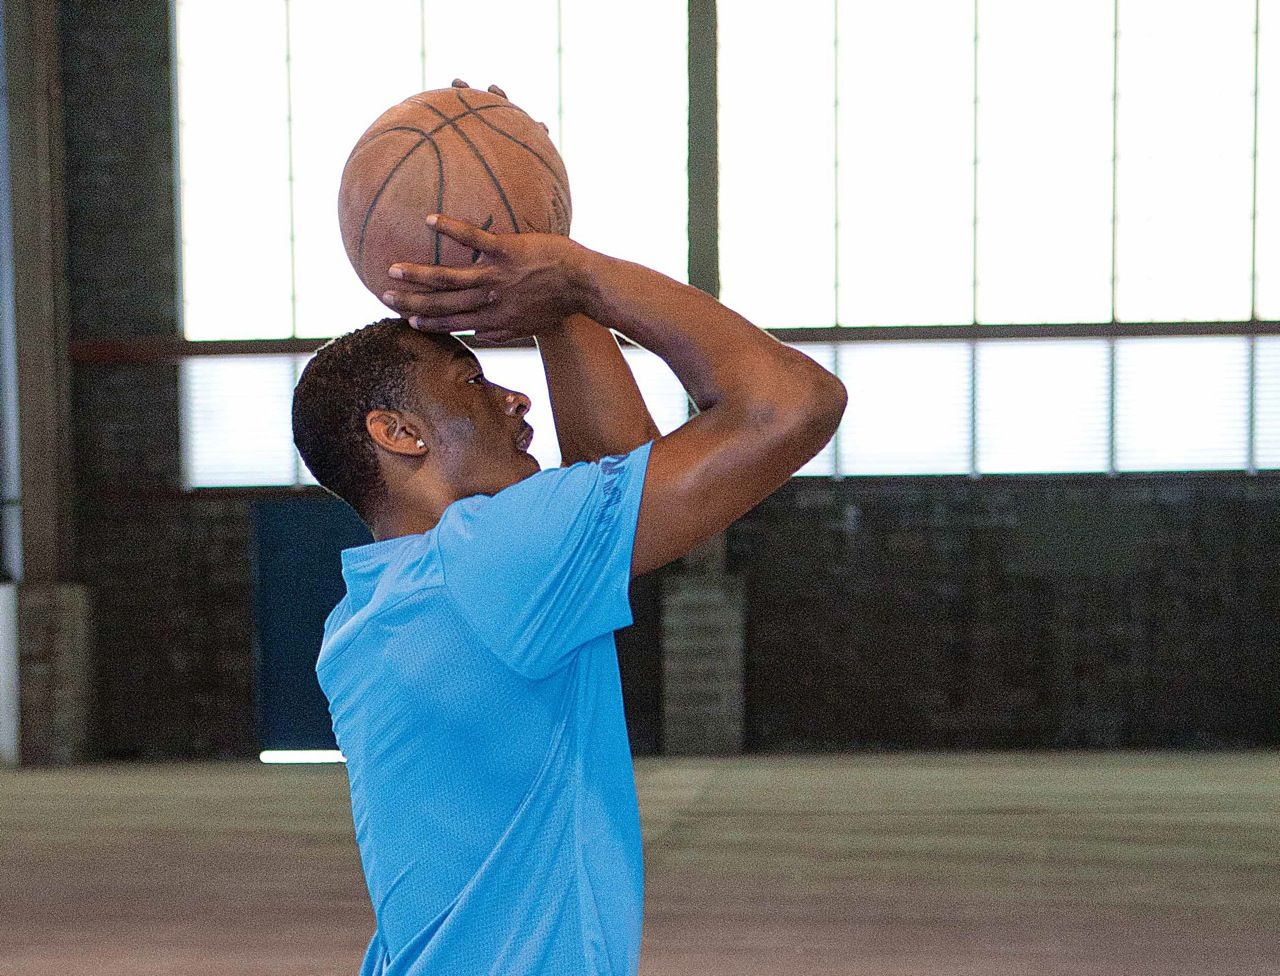 Want To Become A Better Shooter? Check Out These 20 Free